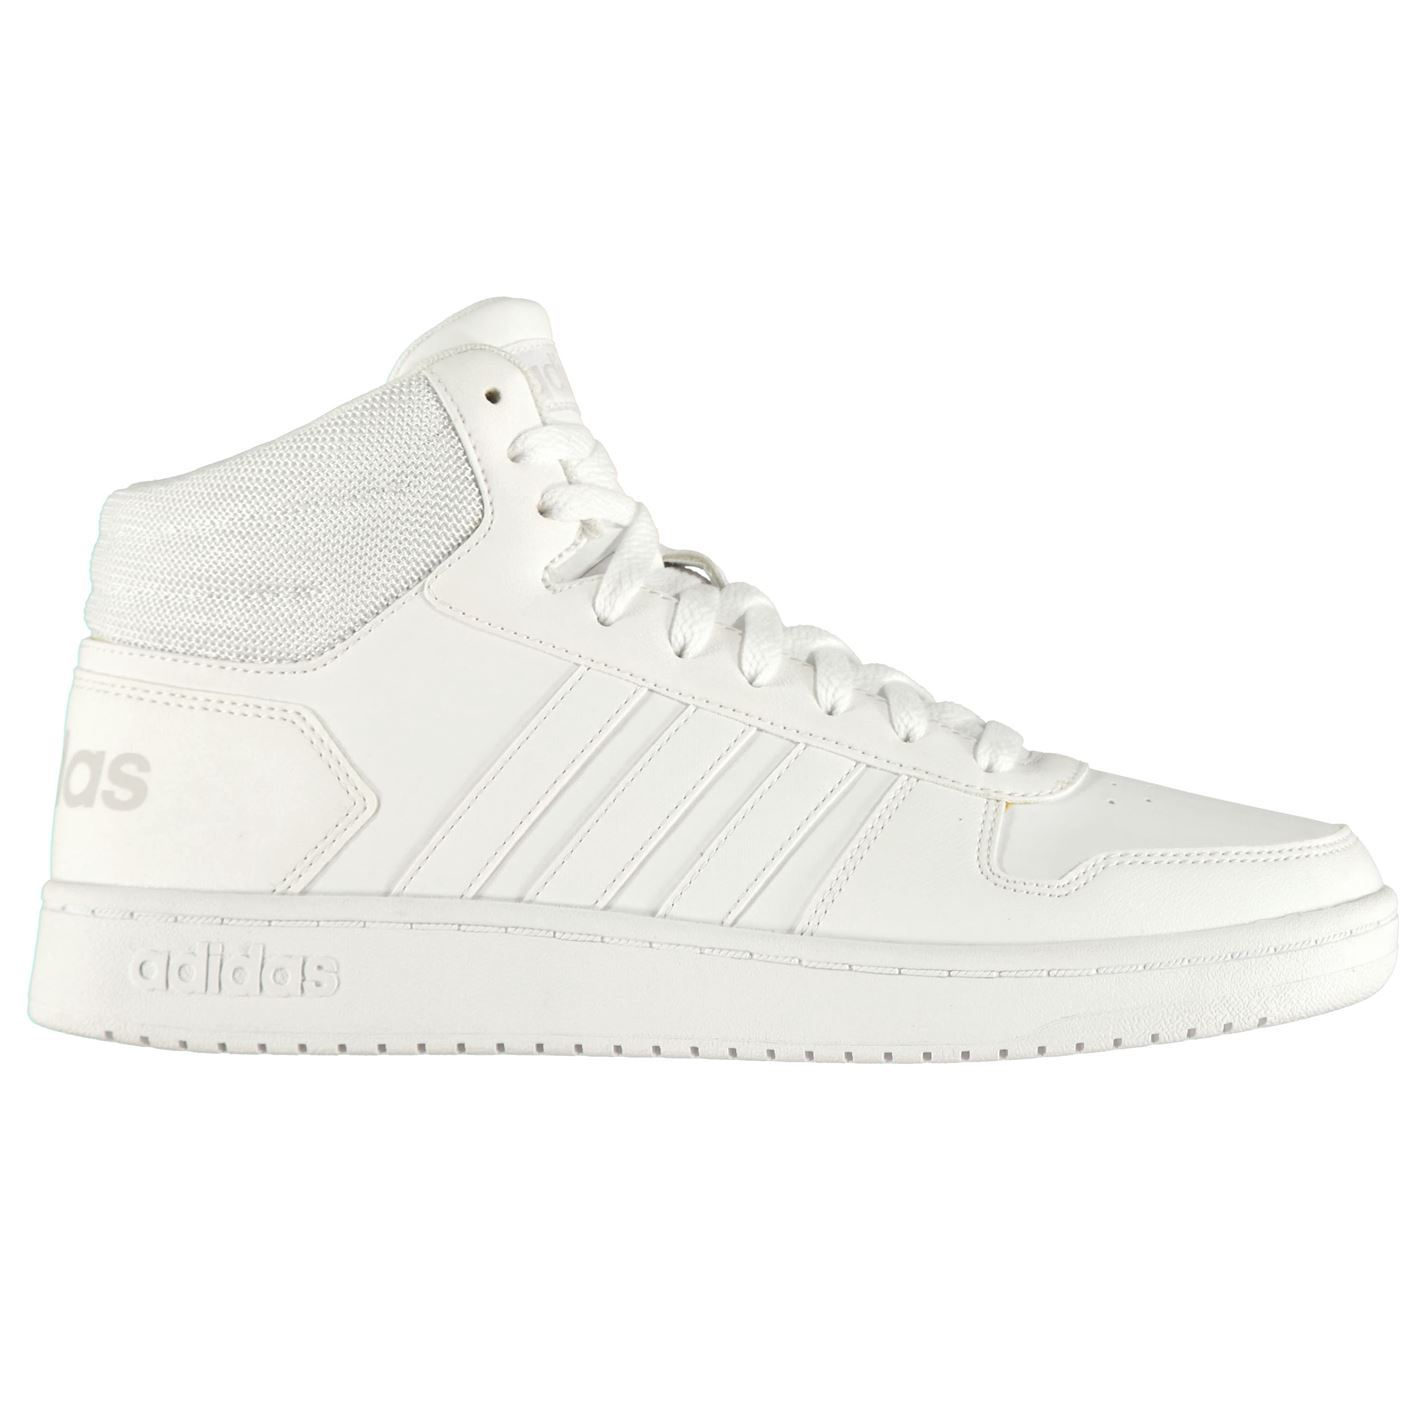 Adidas-Hoops-Mi-Montantes-Homme-athleisure-Chaussures-Baskets-Chaussures miniature 8